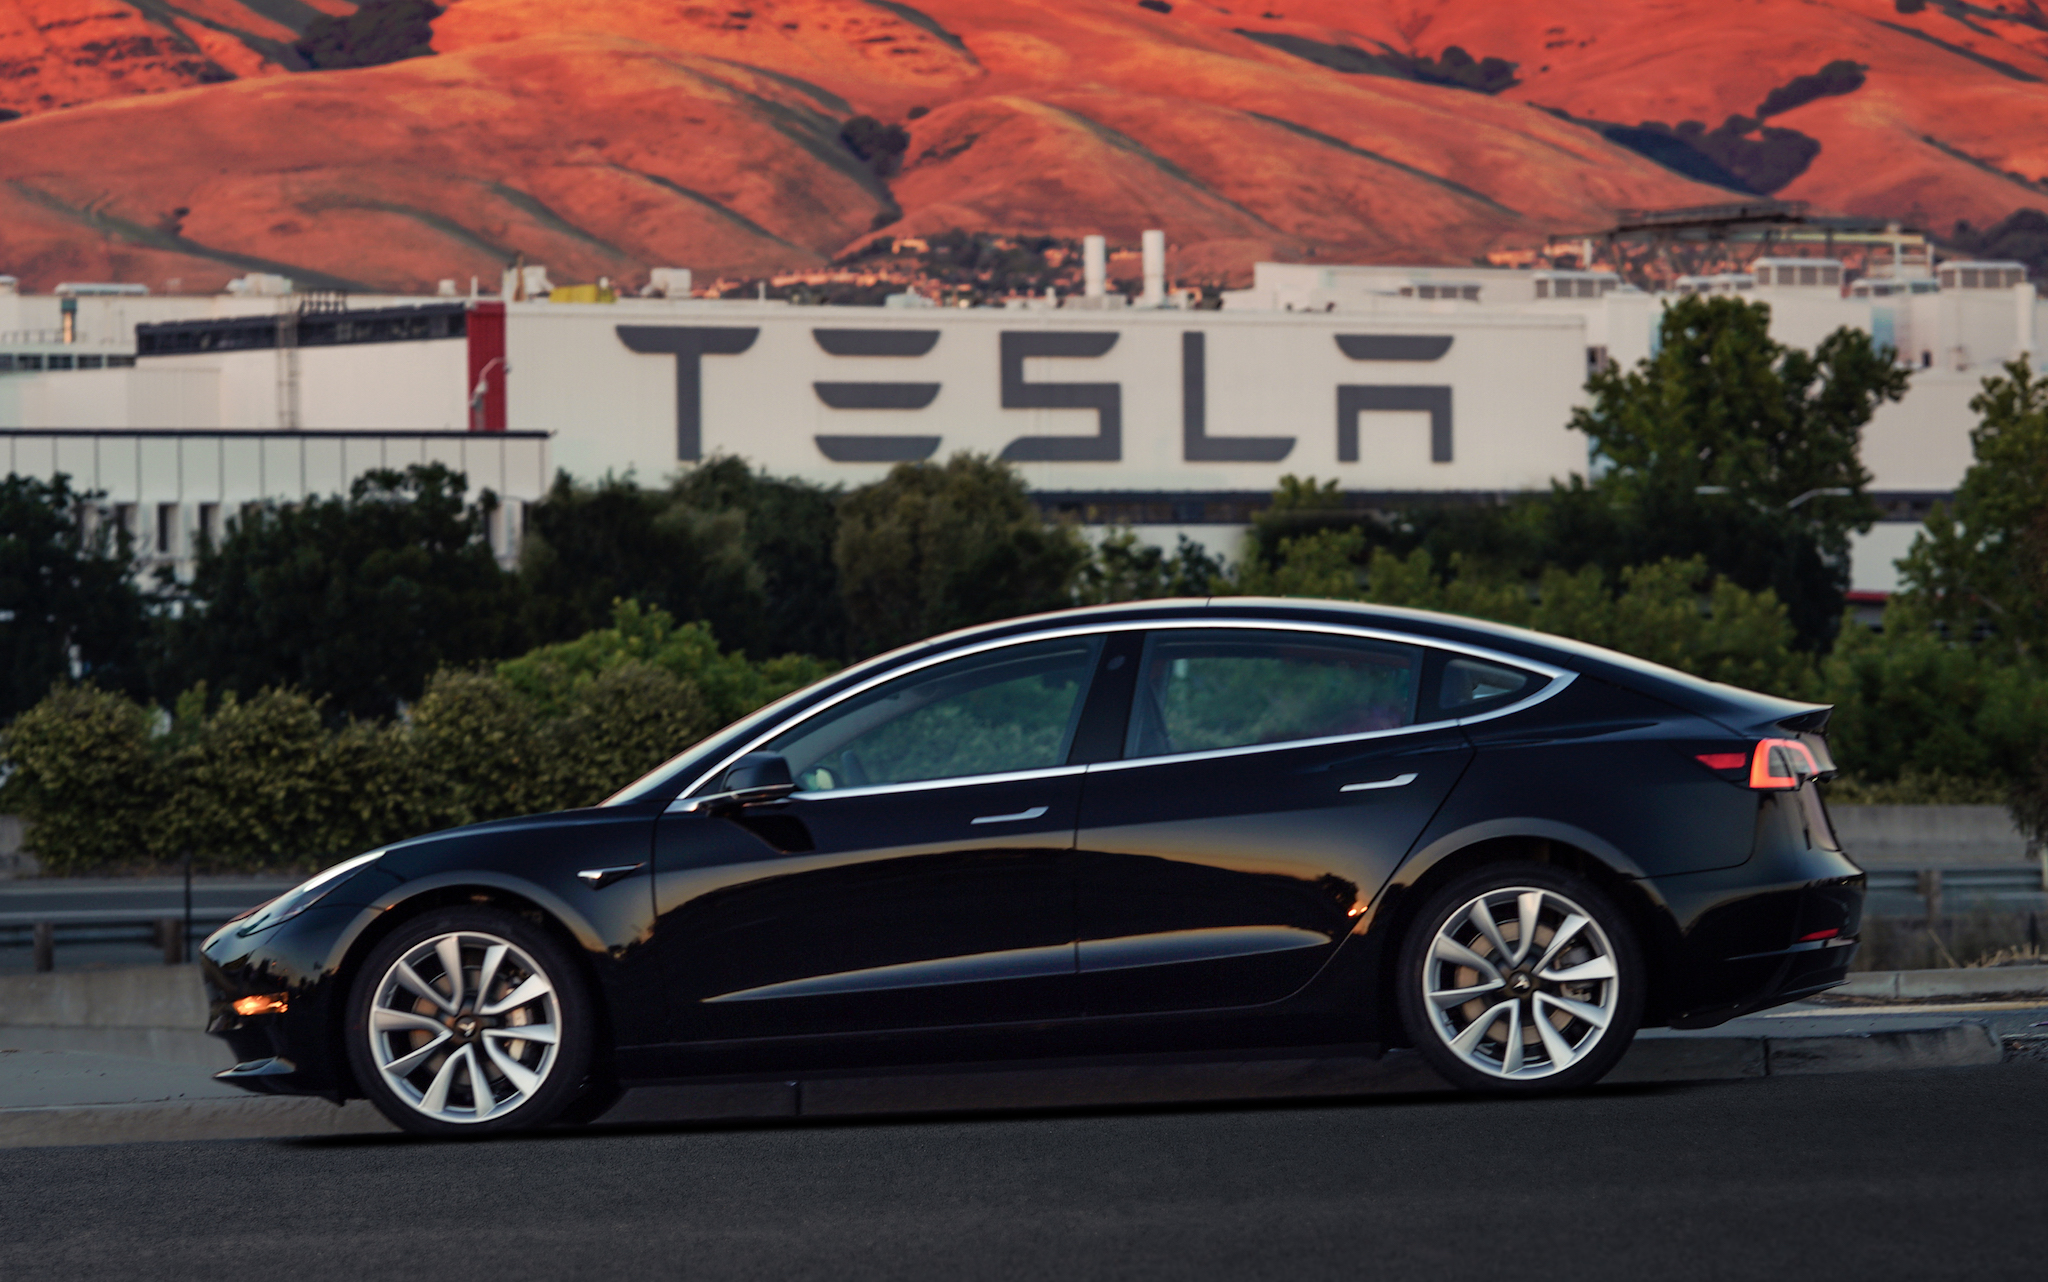 Tesla S Most Affordable Electric Car Gives You A Range Of 310 Miles When Opt For The Long Model And 264 If Go